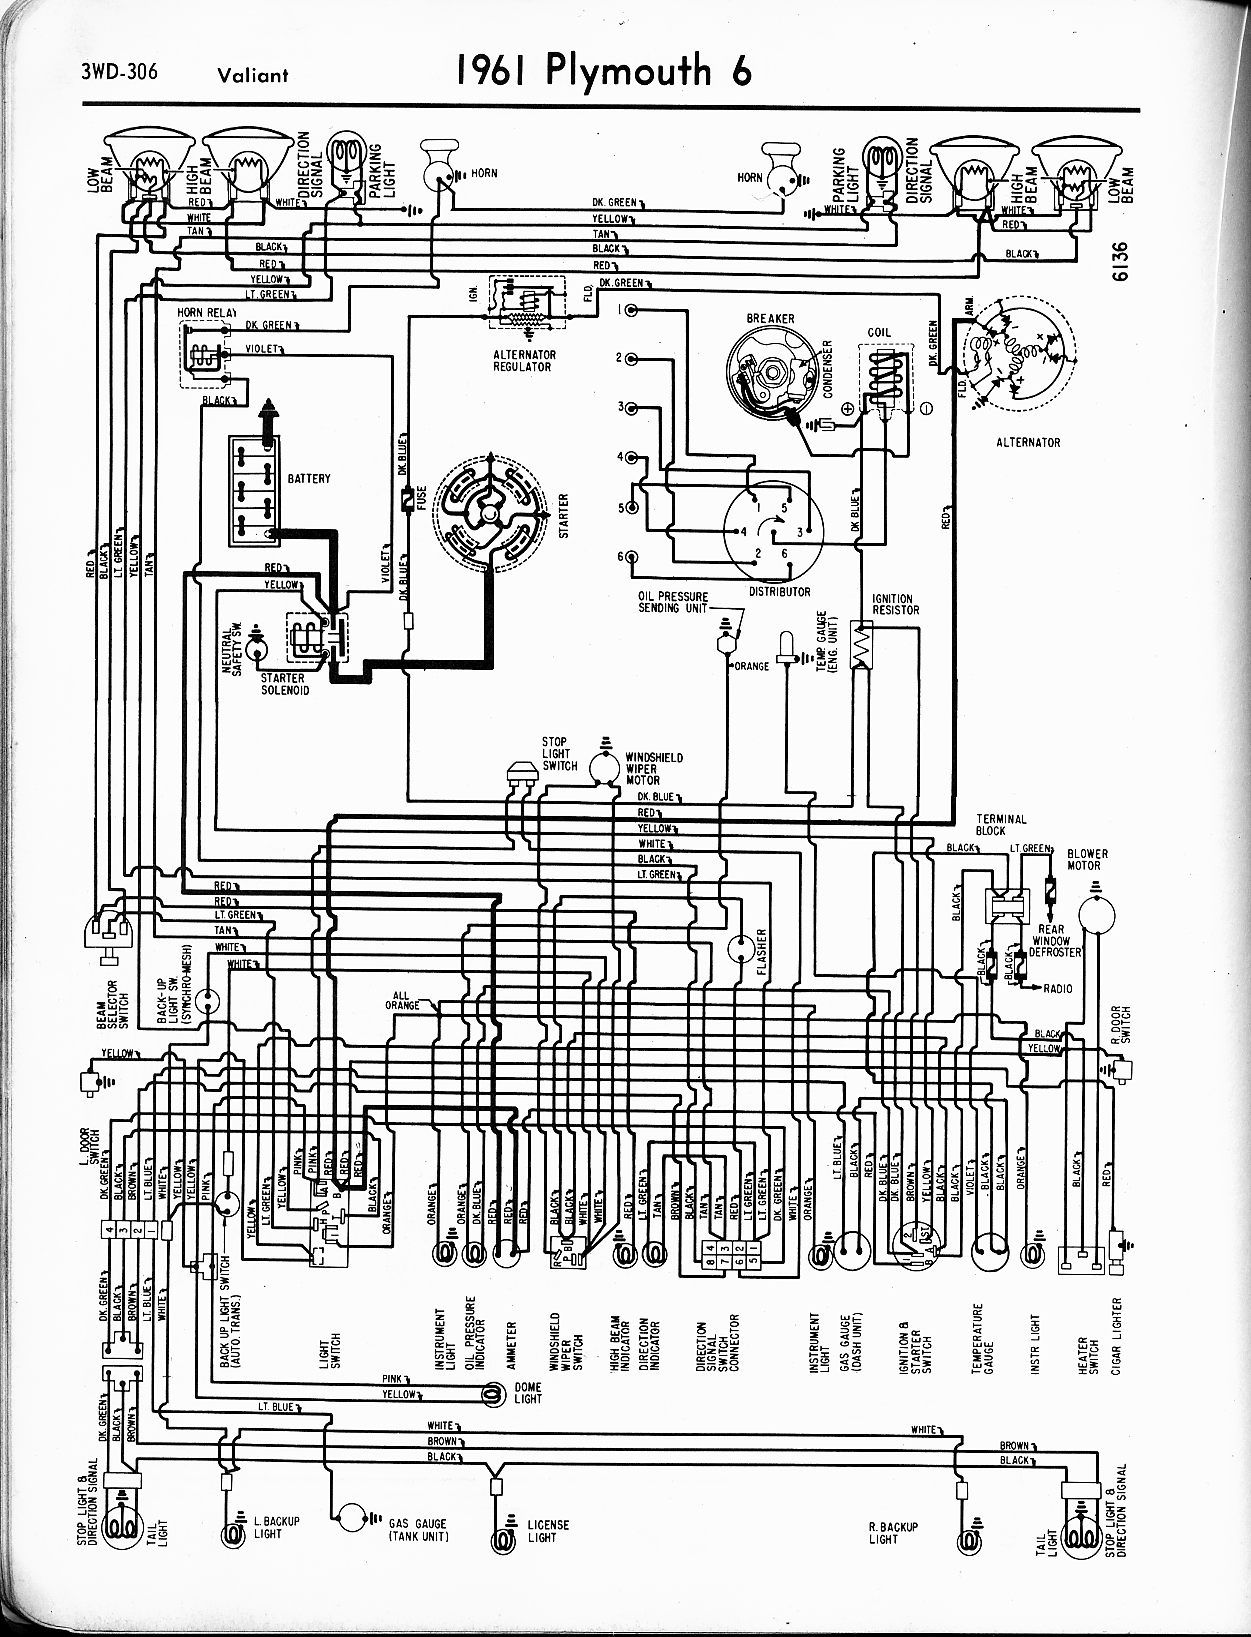 MWire5765 306 1956 1965 plymouth wiring the old car manual project 1968 Ford Falcon Wiring Diagram at panicattacktreatment.co